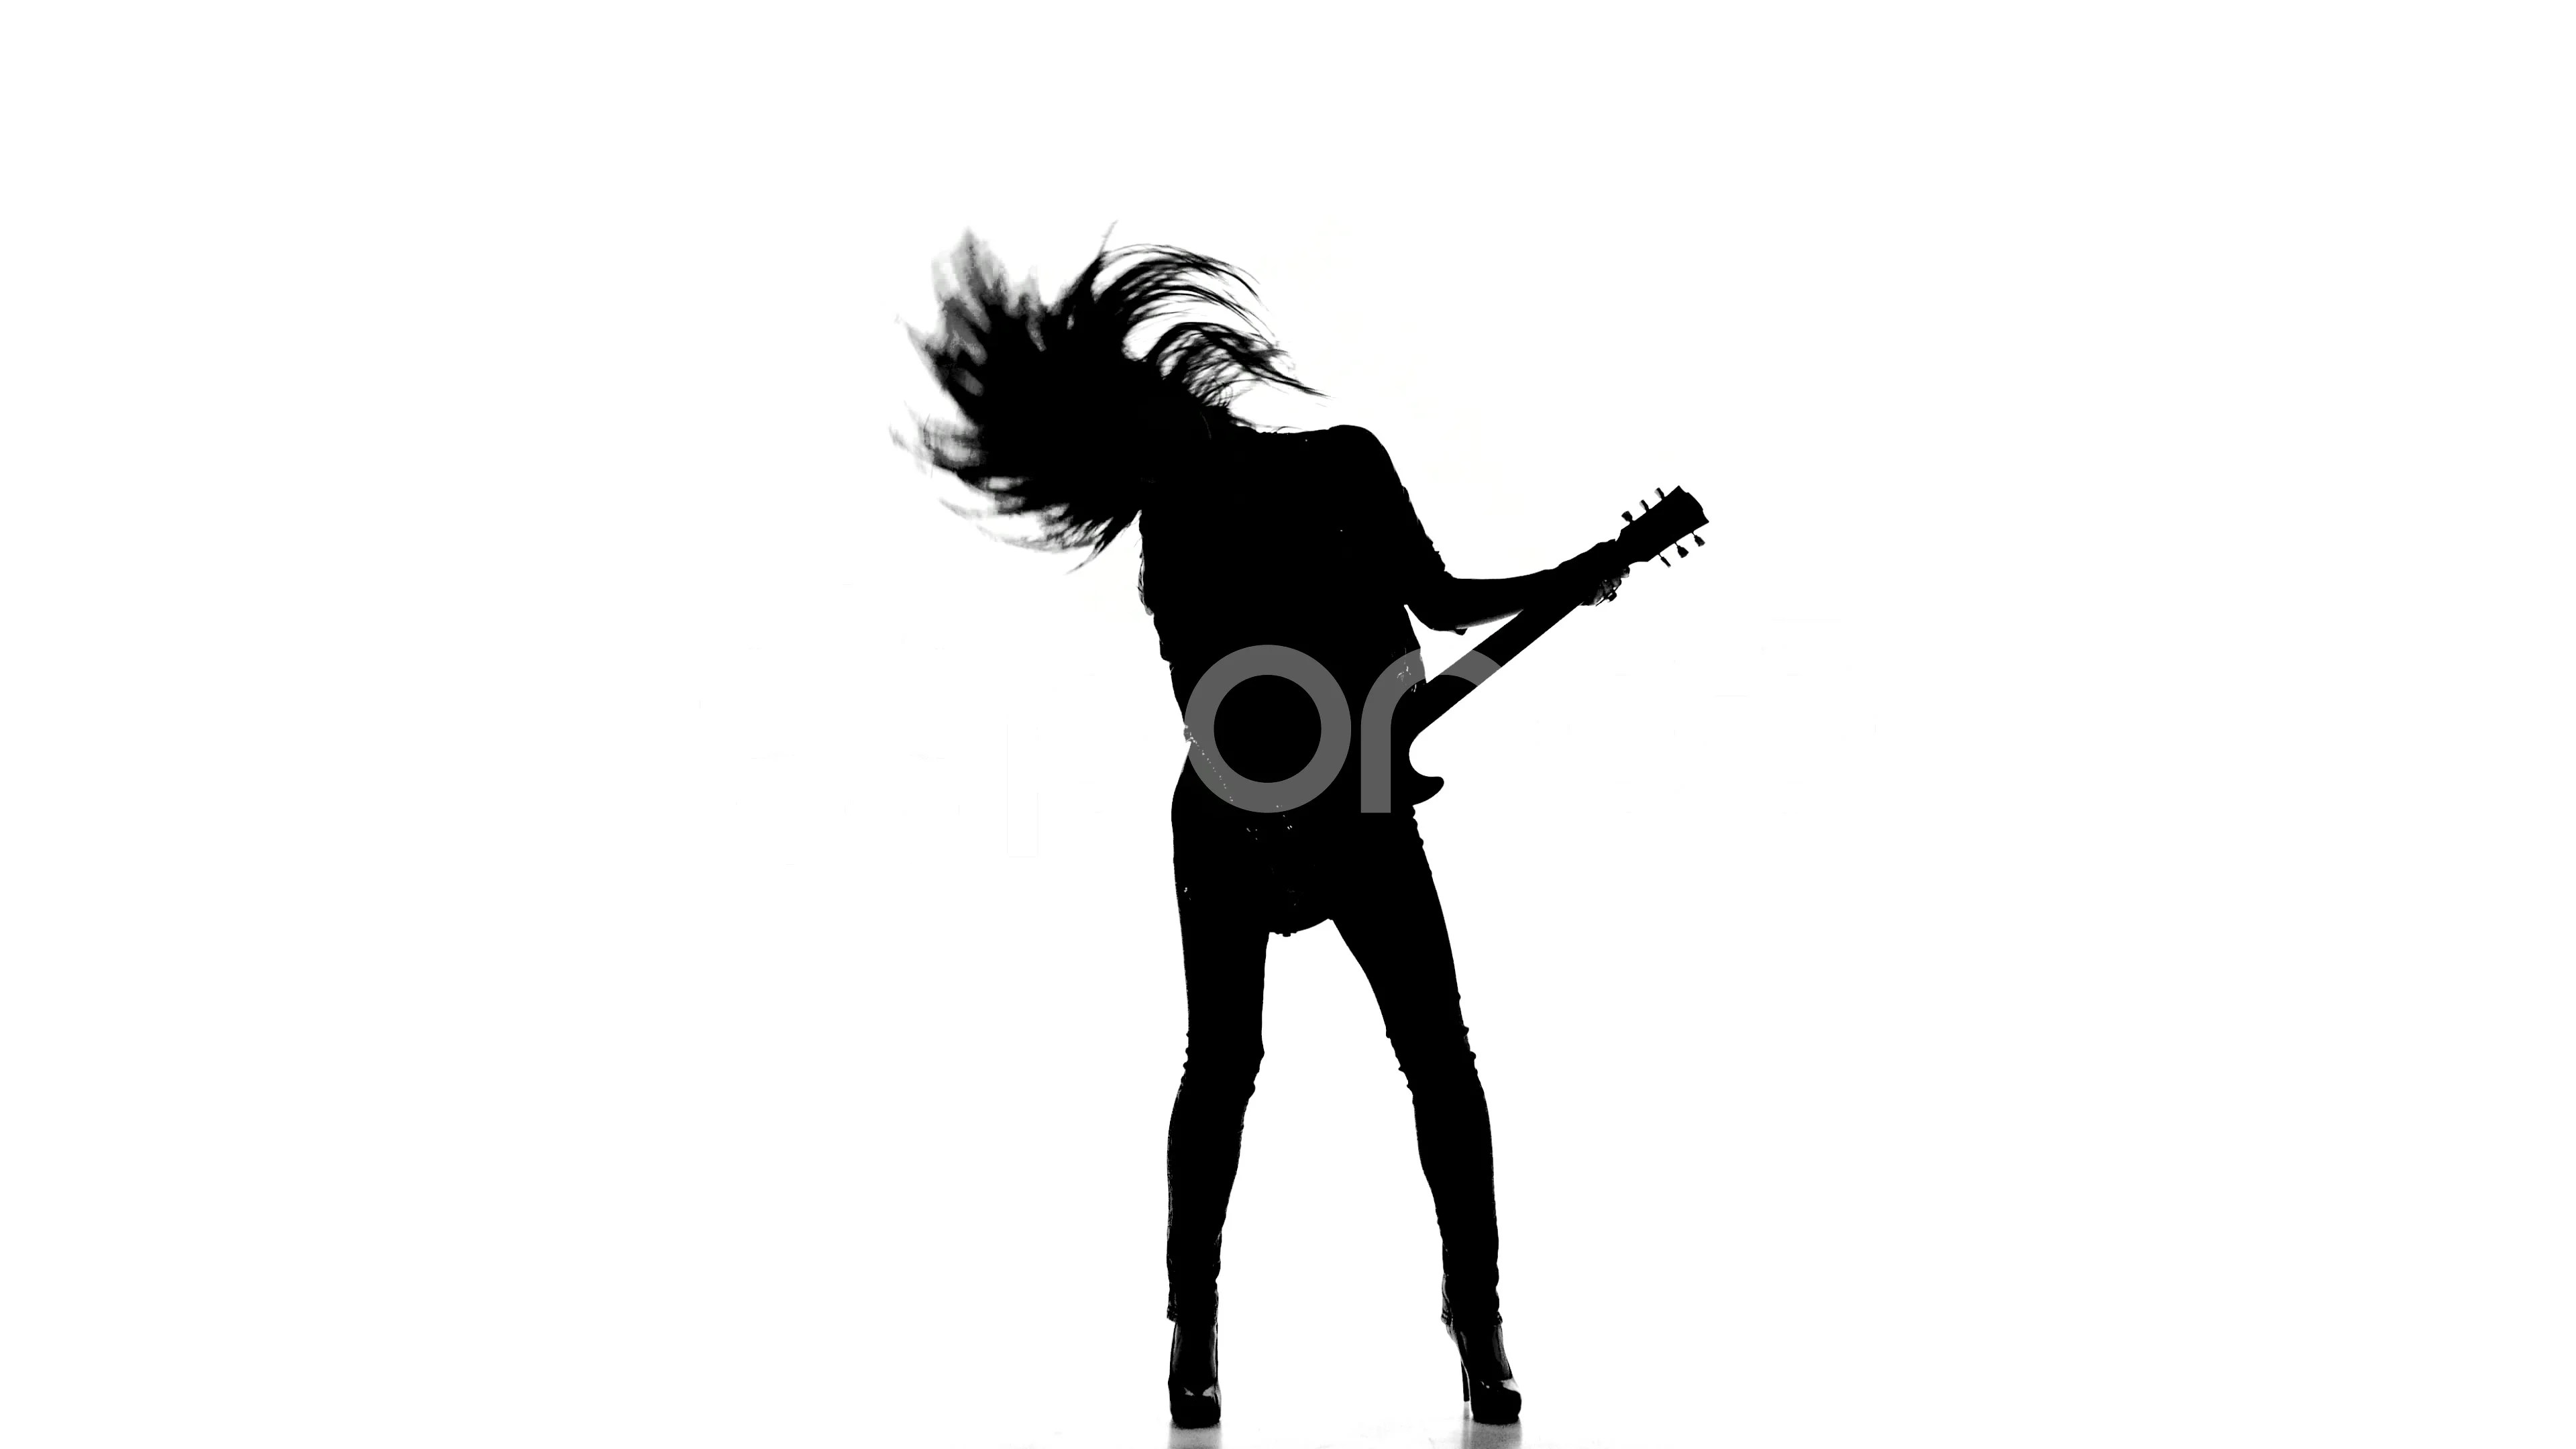 Video Silhouette Of A Young Girl Playing Dancing On